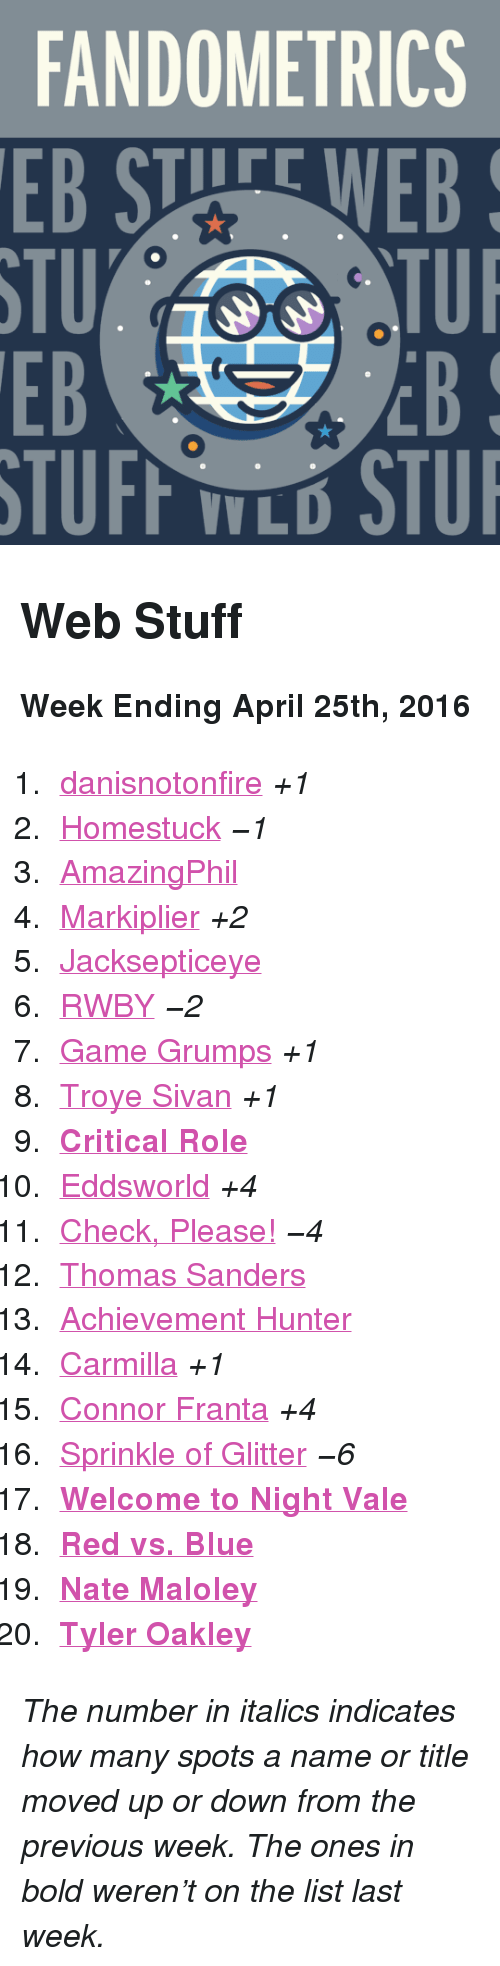 """Red vs. Blue: FANDOMETRICS  EB STUFE WEB  STU  EB  TUI  EB  V L <h2>Web Stuff</h2><p><b>Week Ending April 25th, 2016</b></p><ol><li><a href=""""http://www.tumblr.com/search/danisnotonfire"""">danisnotonfire</a><i>+1</i></li>  <li><a href=""""http://www.tumblr.com/search/homestuck"""">Homestuck</a><i><i><i>−1</i></i></i></li>  <li><a href=""""http://www.tumblr.com/search/amazingphil"""">AmazingPhil</a></li>  <li><a href=""""http://www.tumblr.com/search/markiplier"""">Markiplier</a><i>+2</i></li>  <li><a href=""""http://www.tumblr.com/search/jacksepticeye"""">Jacksepticeye</a></li>  <li><a href=""""http://www.tumblr.com/search/rwby"""">RWBY</a><i><i><i>−2</i></i></i></li>  <li><a href=""""http://www.tumblr.com/search/game%20grumps"""">Game Grumps</a><i>+1</i></li>  <li><a href=""""http://www.tumblr.com/search/troye%20sivan"""">Troye Sivan</a><i>+1</i></li>  <li><b><a href=""""http://www.tumblr.com/search/critical%20role"""">Critical Role</a></b></li>  <li><a href=""""http://www.tumblr.com/search/eddsworld"""">Eddsworld</a><i>+4</i></li>  <li><a href=""""http://www.tumblr.com/search/omgcheckplease"""">Check, Please!</a><i><i><i>−4</i></i></i></li>  <li><a href=""""http://www.tumblr.com/search/thomas%20sanders"""">Thomas Sanders</a></li>  <li><a href=""""http://www.tumblr.com/search/achievement%20hunter"""">Achievement Hunter</a></li>  <li><a href=""""http://www.tumblr.com/search/carmilla"""">Carmilla</a><i>+1</i></li>  <li><a href=""""http://www.tumblr.com/search/connor%20franta"""">Connor Franta</a><i>+4</i></li>  <li><a href=""""http://www.tumblr.com/search/sprinkleofglitter"""">Sprinkle of Glitter</a><i><i><i>−6</i></i></i></li>  <li><a href=""""http://www.tumblr.com/search/welcome%20to%20night%20vale""""><b>Welcome to Night Vale</b></a></li>  <li><a href=""""http://www.tumblr.com/search/rvb""""><b>Red vs. Blue</b></a></li>  <li><a href=""""http://www.tumblr.com/search/nate%20maloley""""><b>Nate Maloley</b></a></li>  <li><a href=""""http://www.tumblr.com/search/tyler%20oakley""""><b>Tyler Oakley</b></a></li></ol><p><i>The number in italics indicates how many spots a name or title mov"""